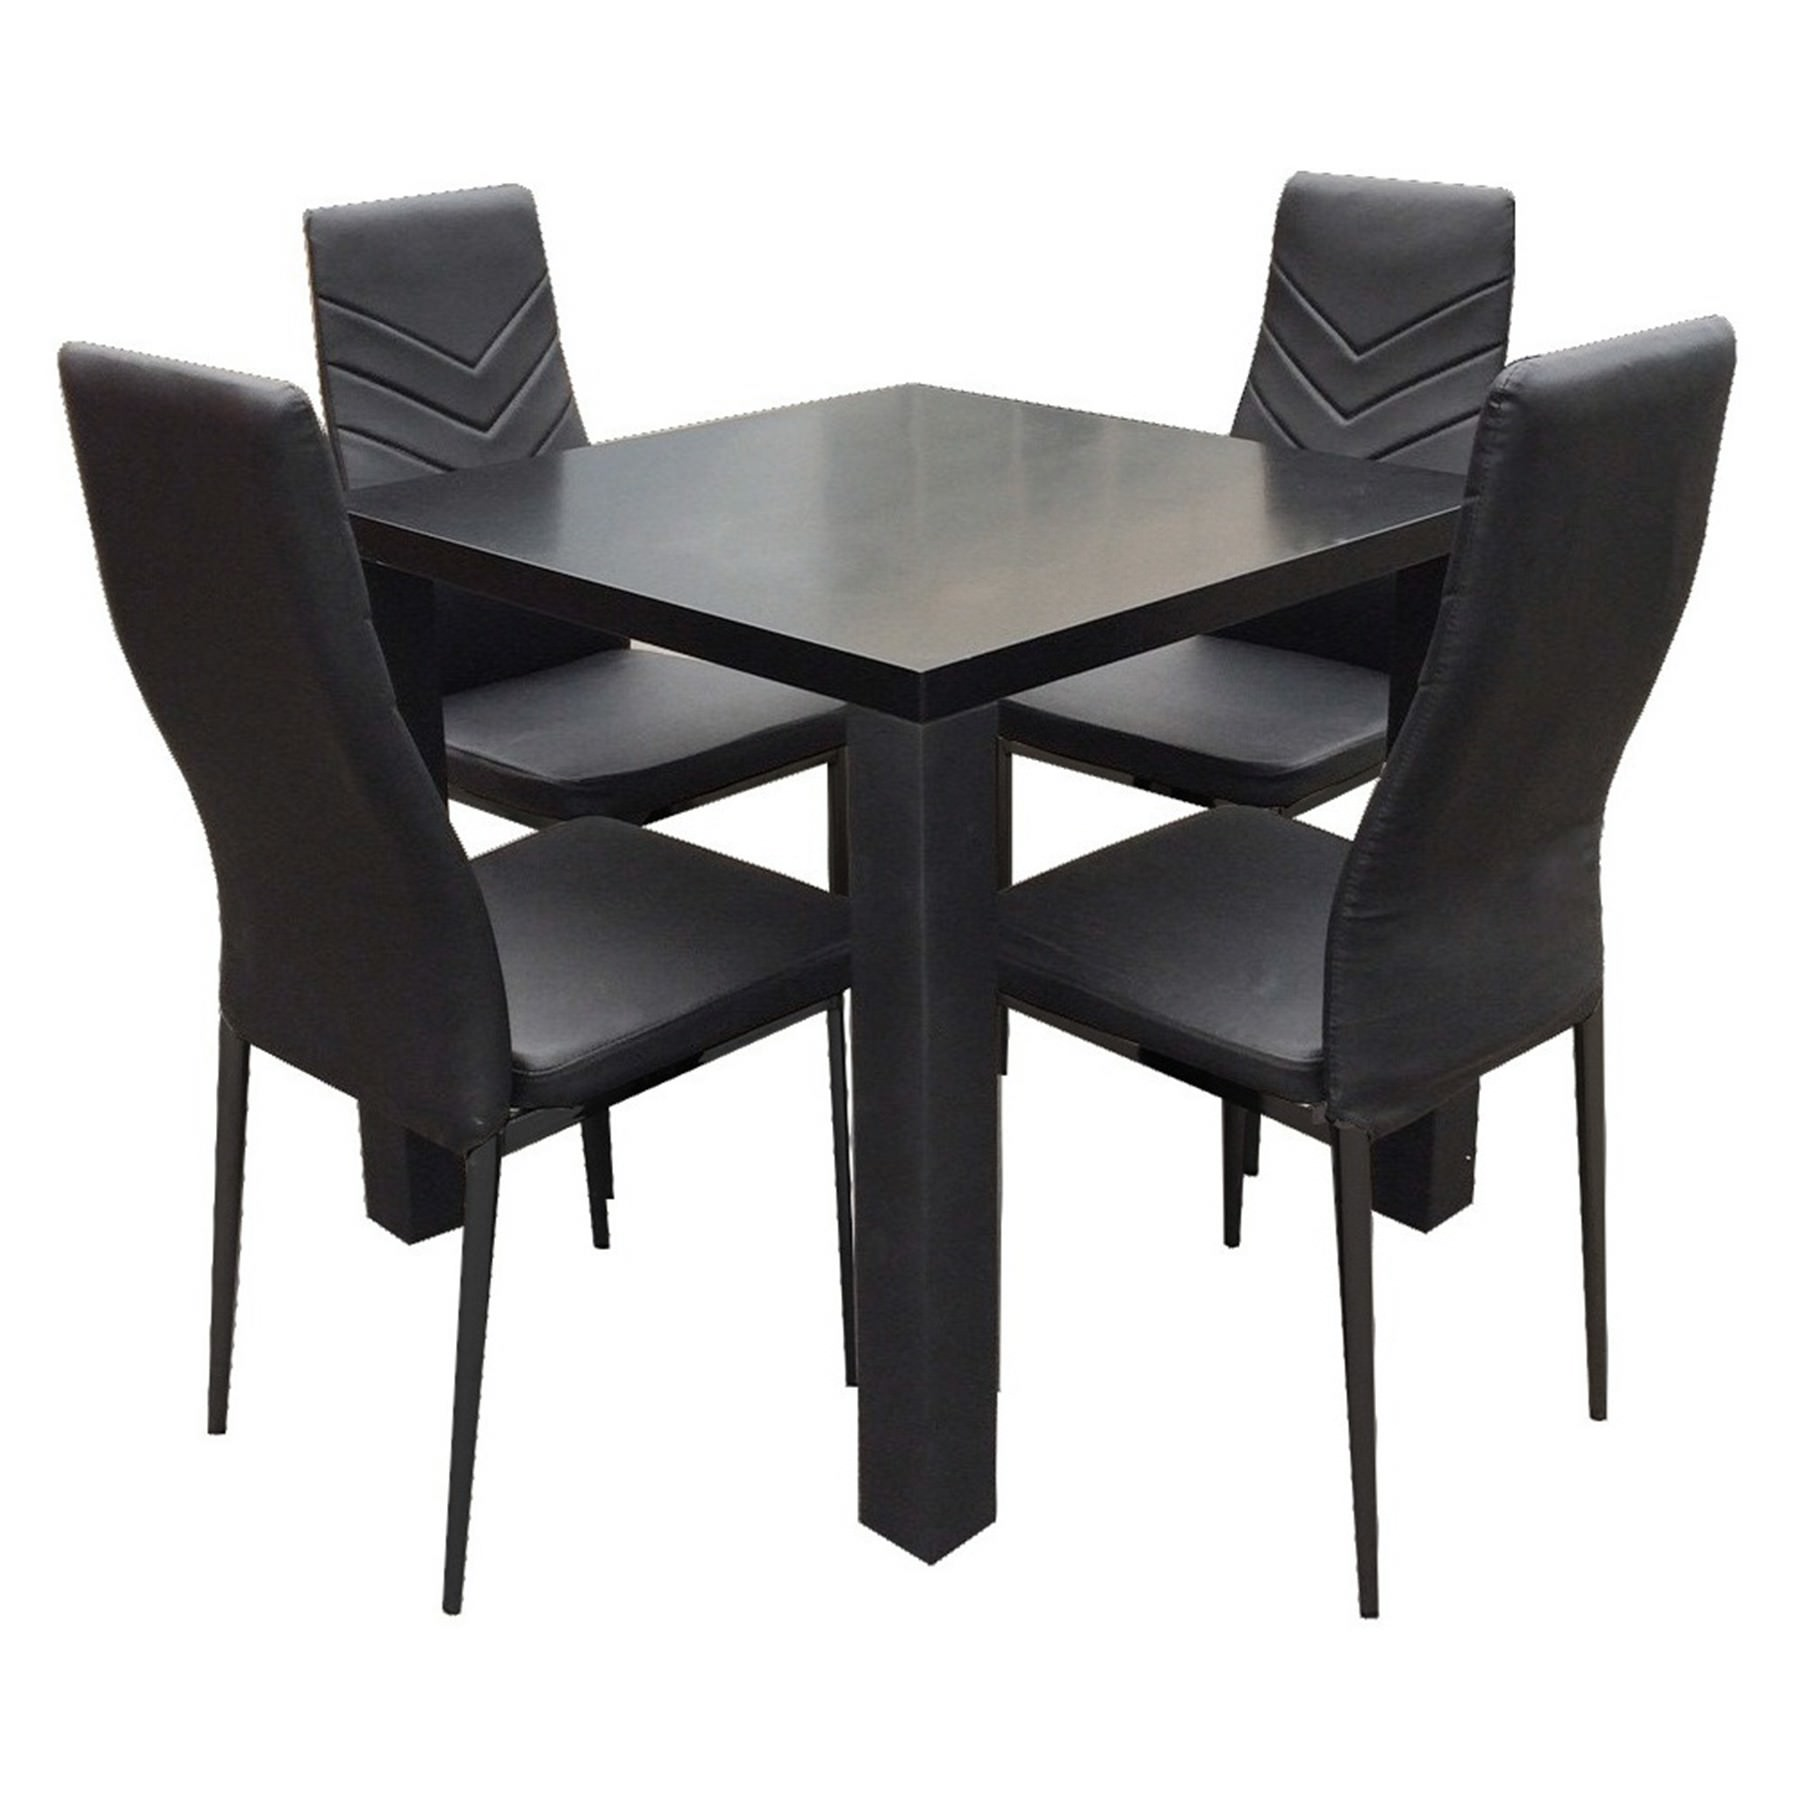 Harley 5 Piece Square Dining Table Set, 80cm